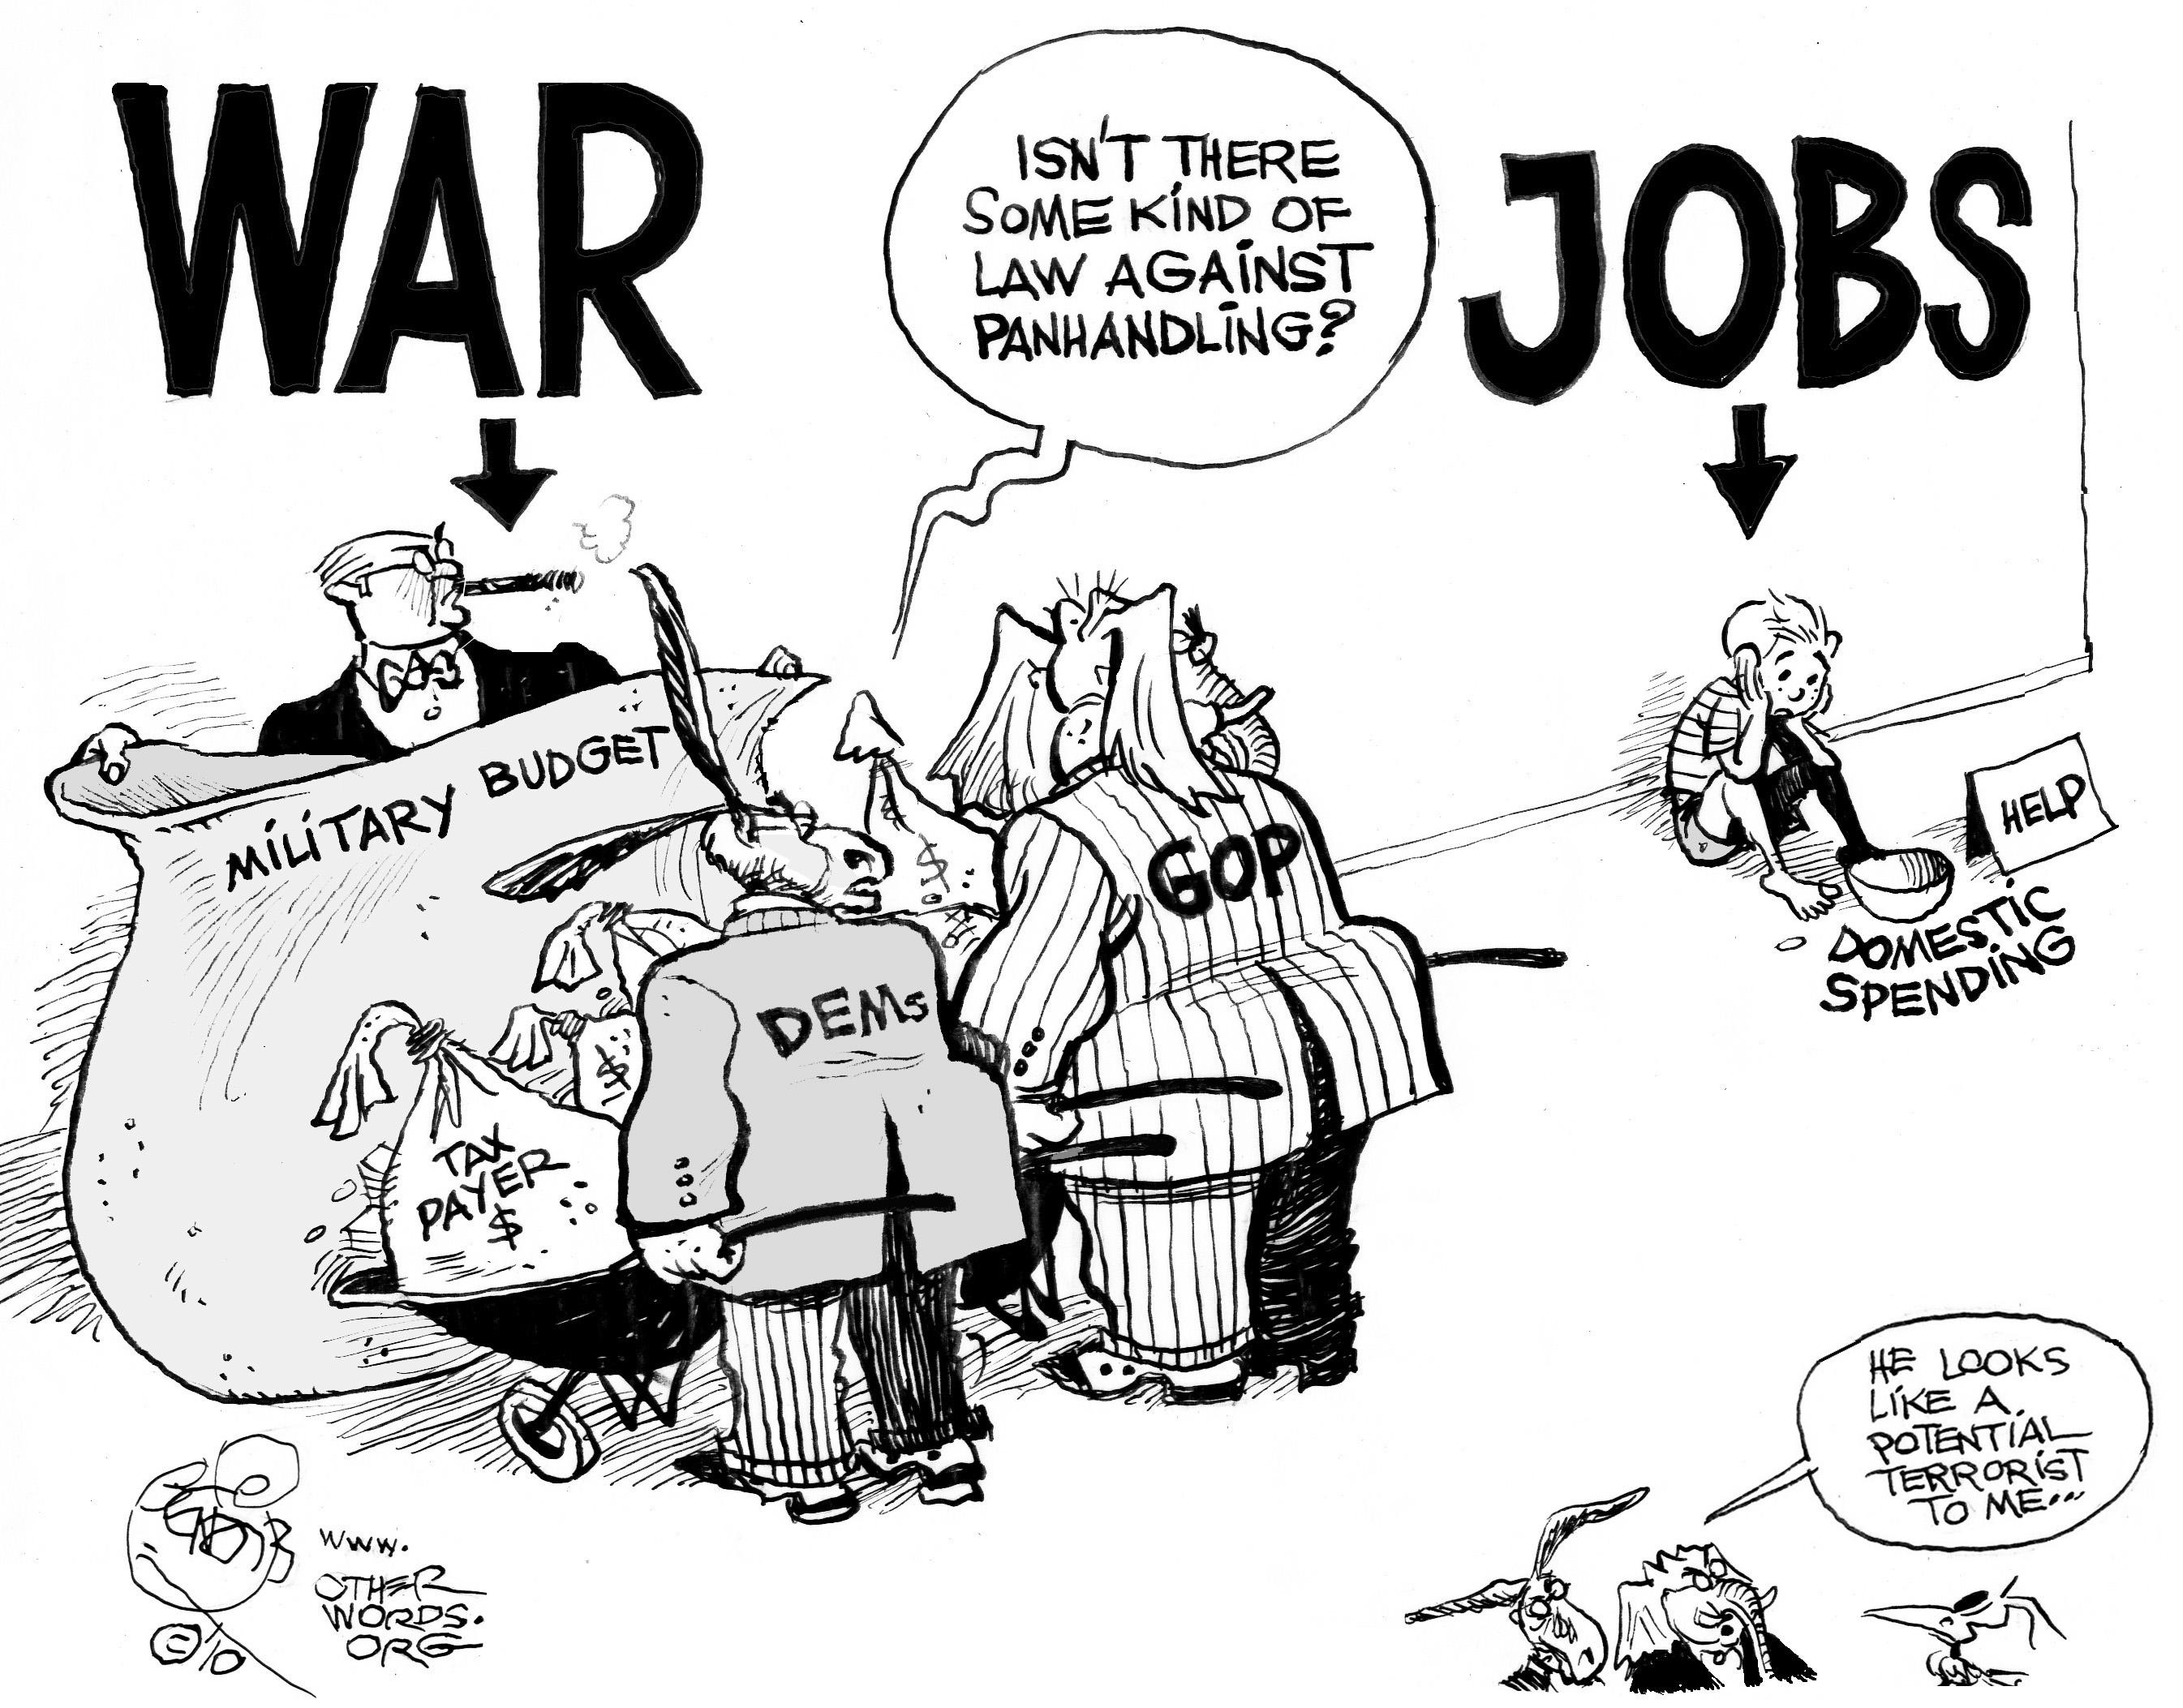 Jobs vs. War